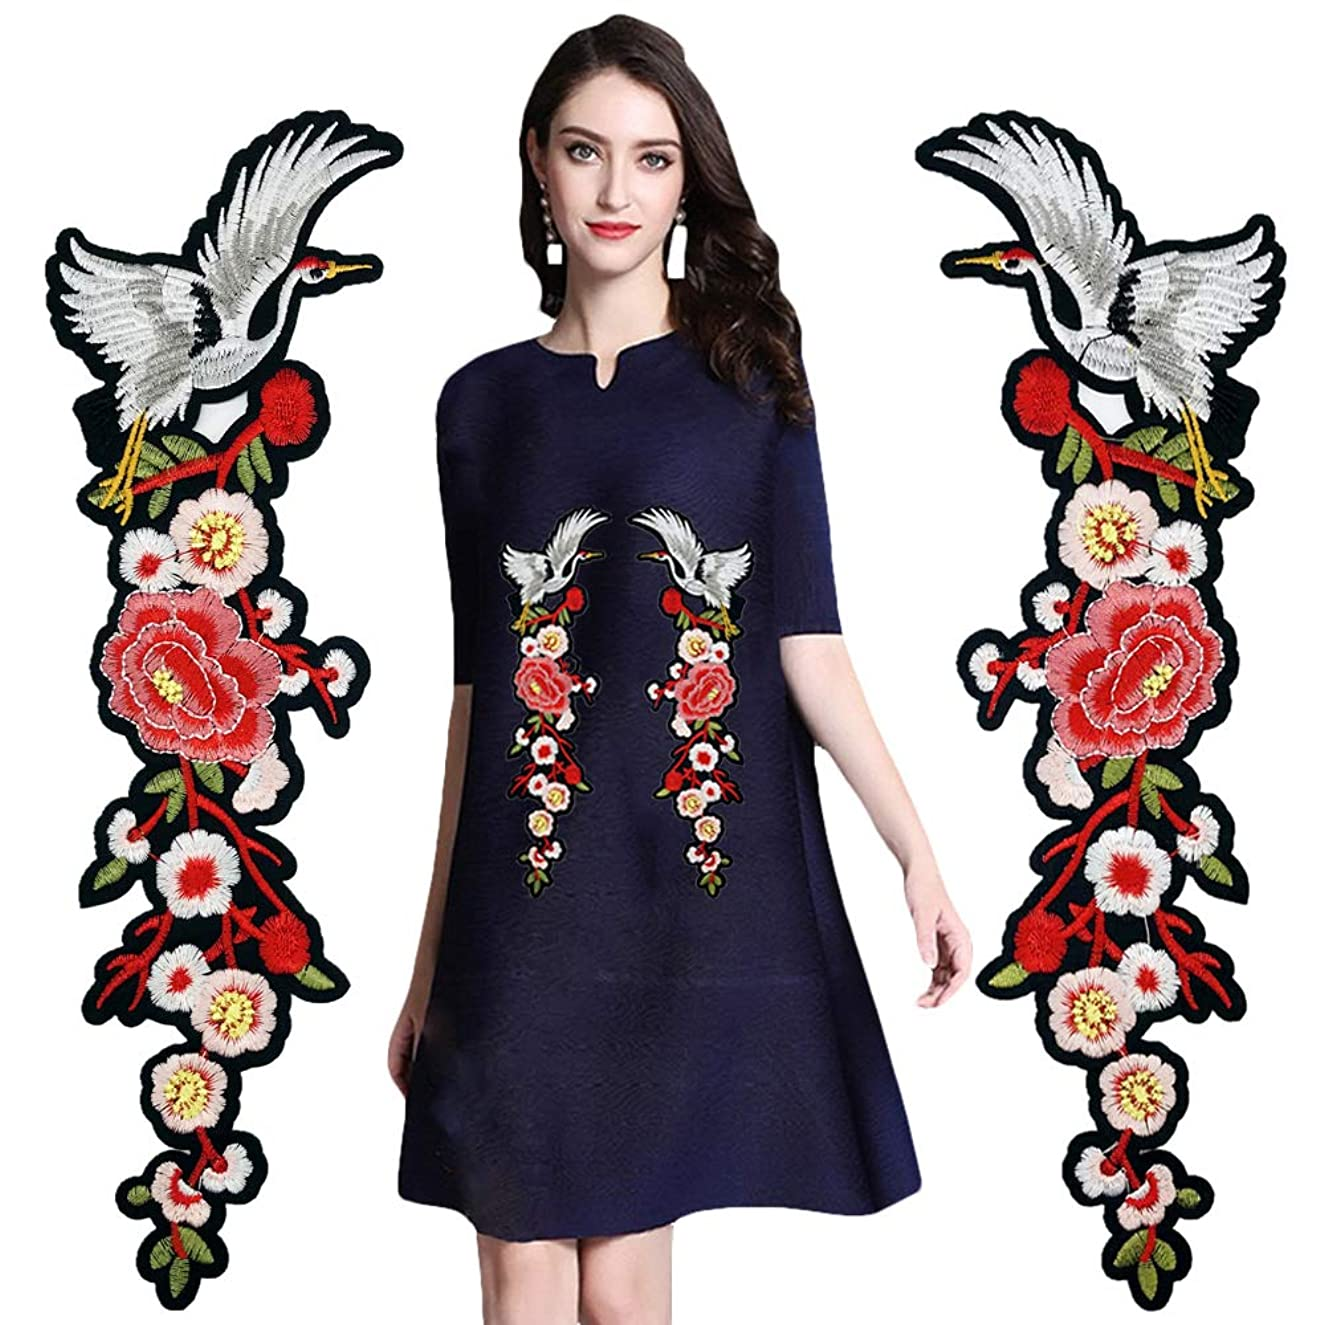 Bird Flower Iron on Patches Embroidered Applique Sew on Floral Patches for DIY Decorative Jeans, Jackets, Clothing, Dress (1 Pairs)